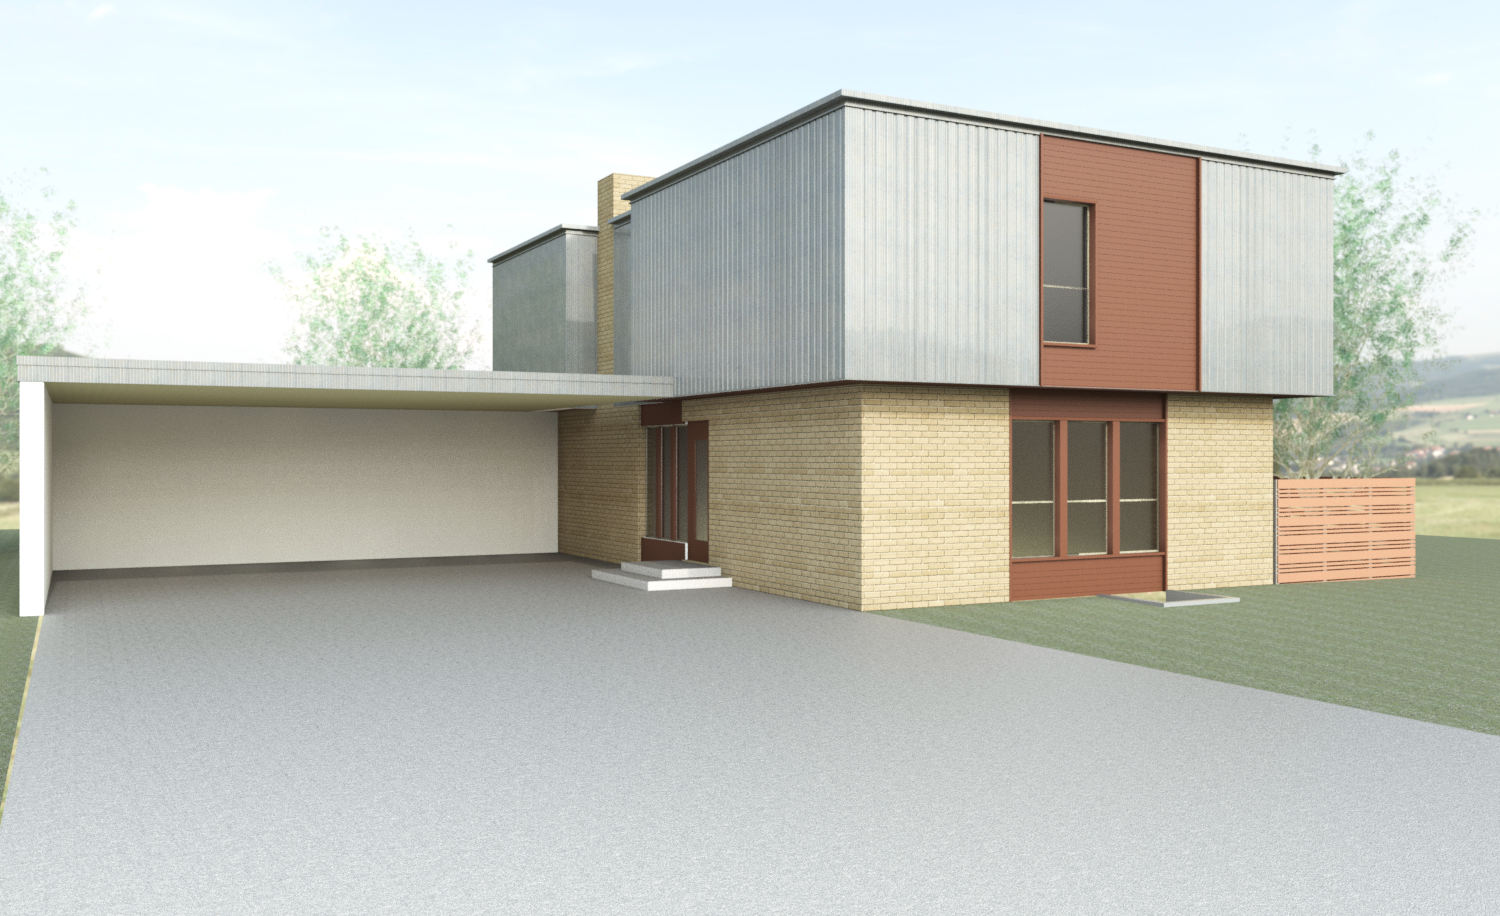 03 Martins_Residence_3D_View_-_front_from_street_-_light_gray_upper.png